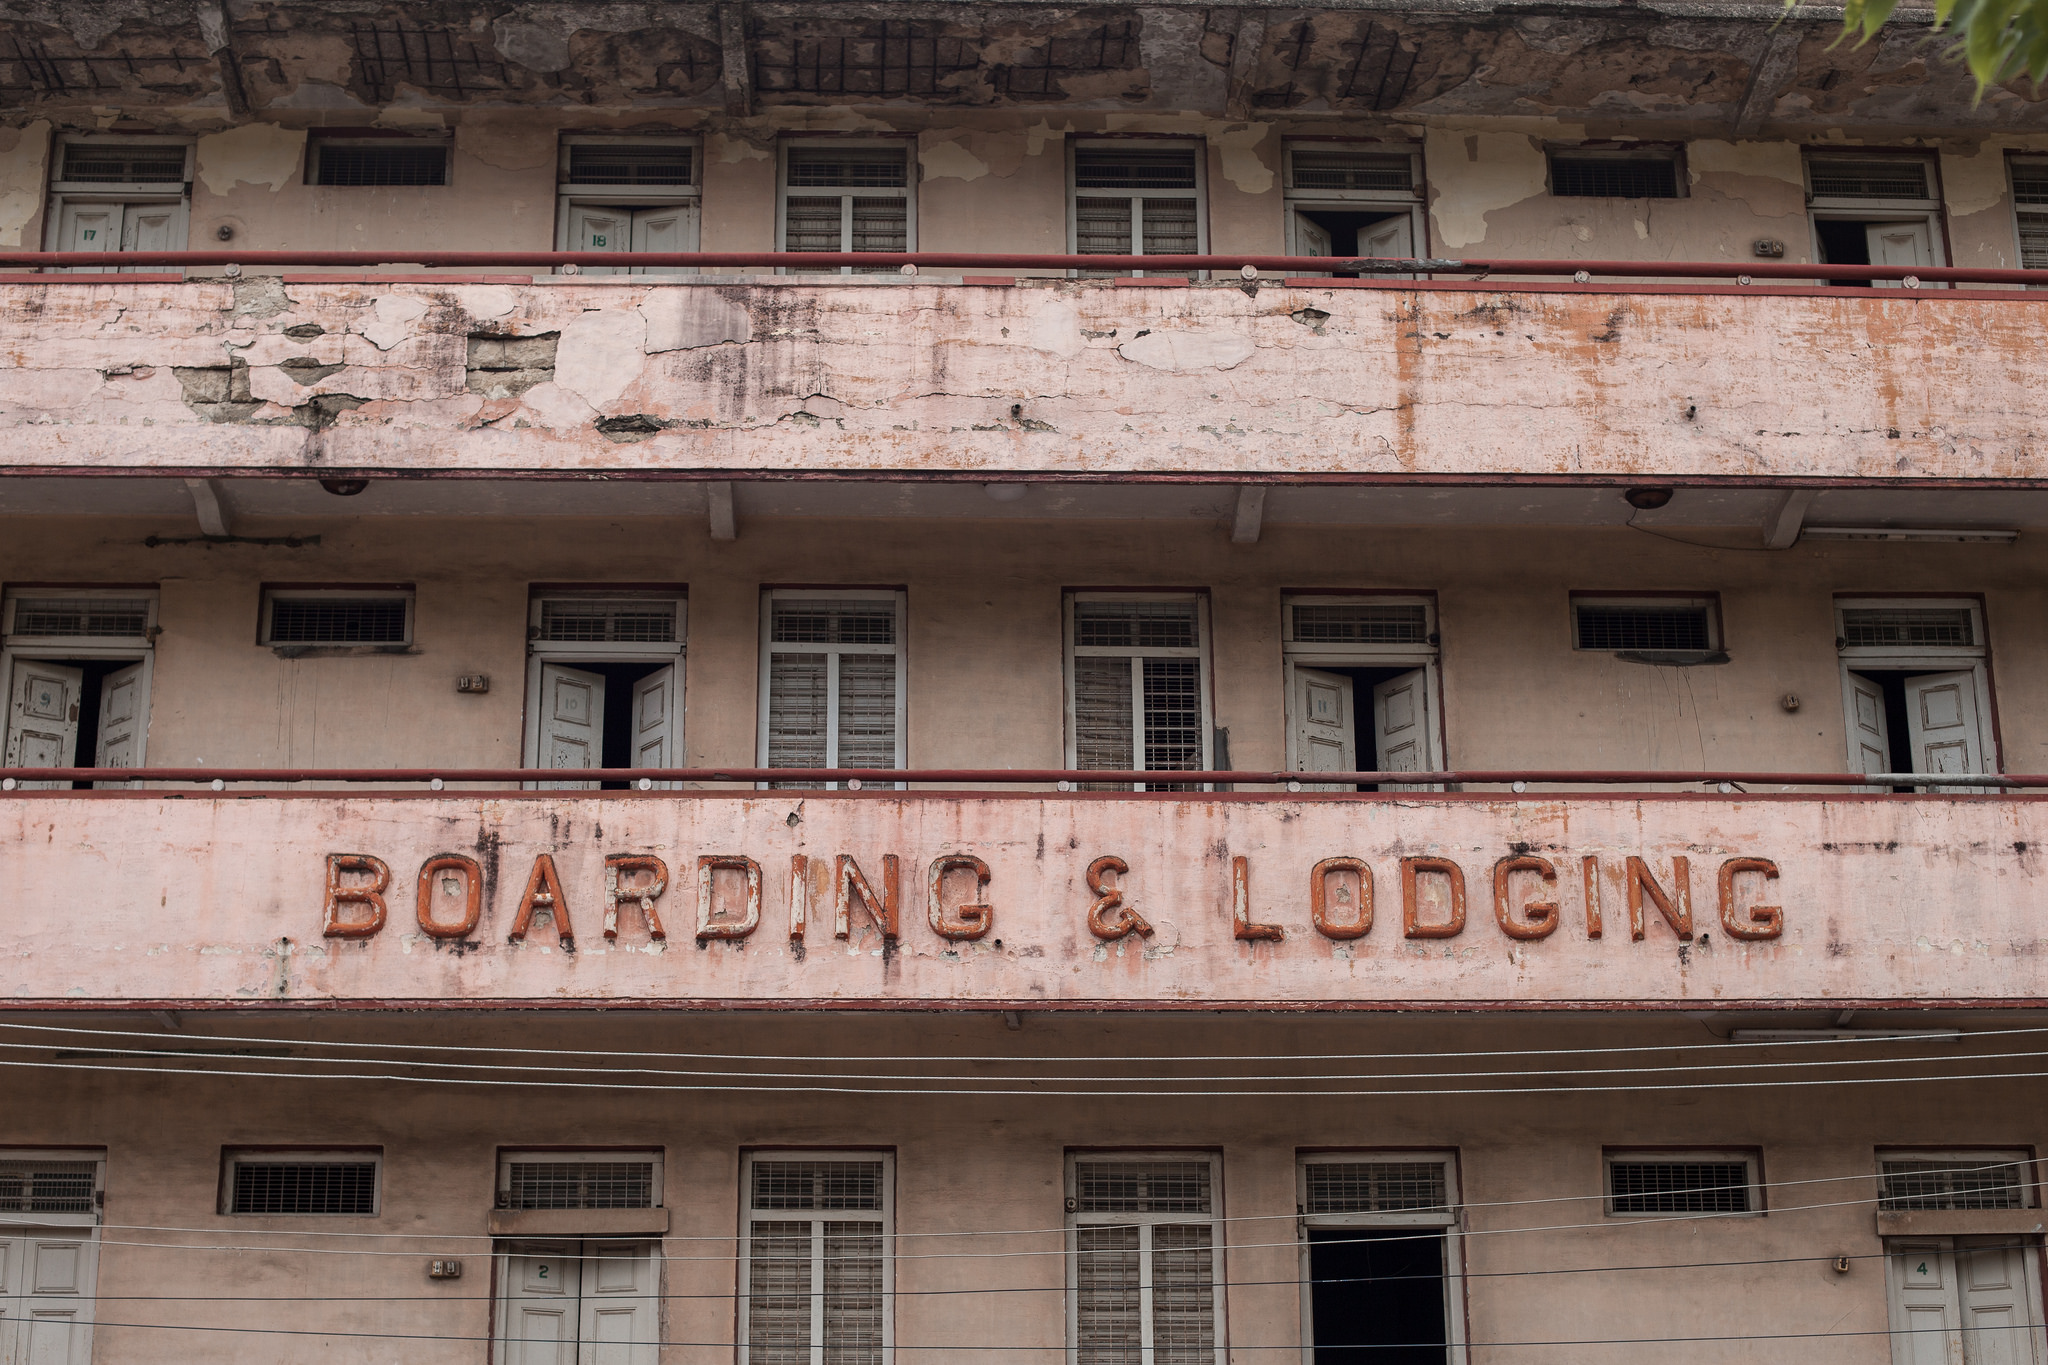 Boarding and lodging